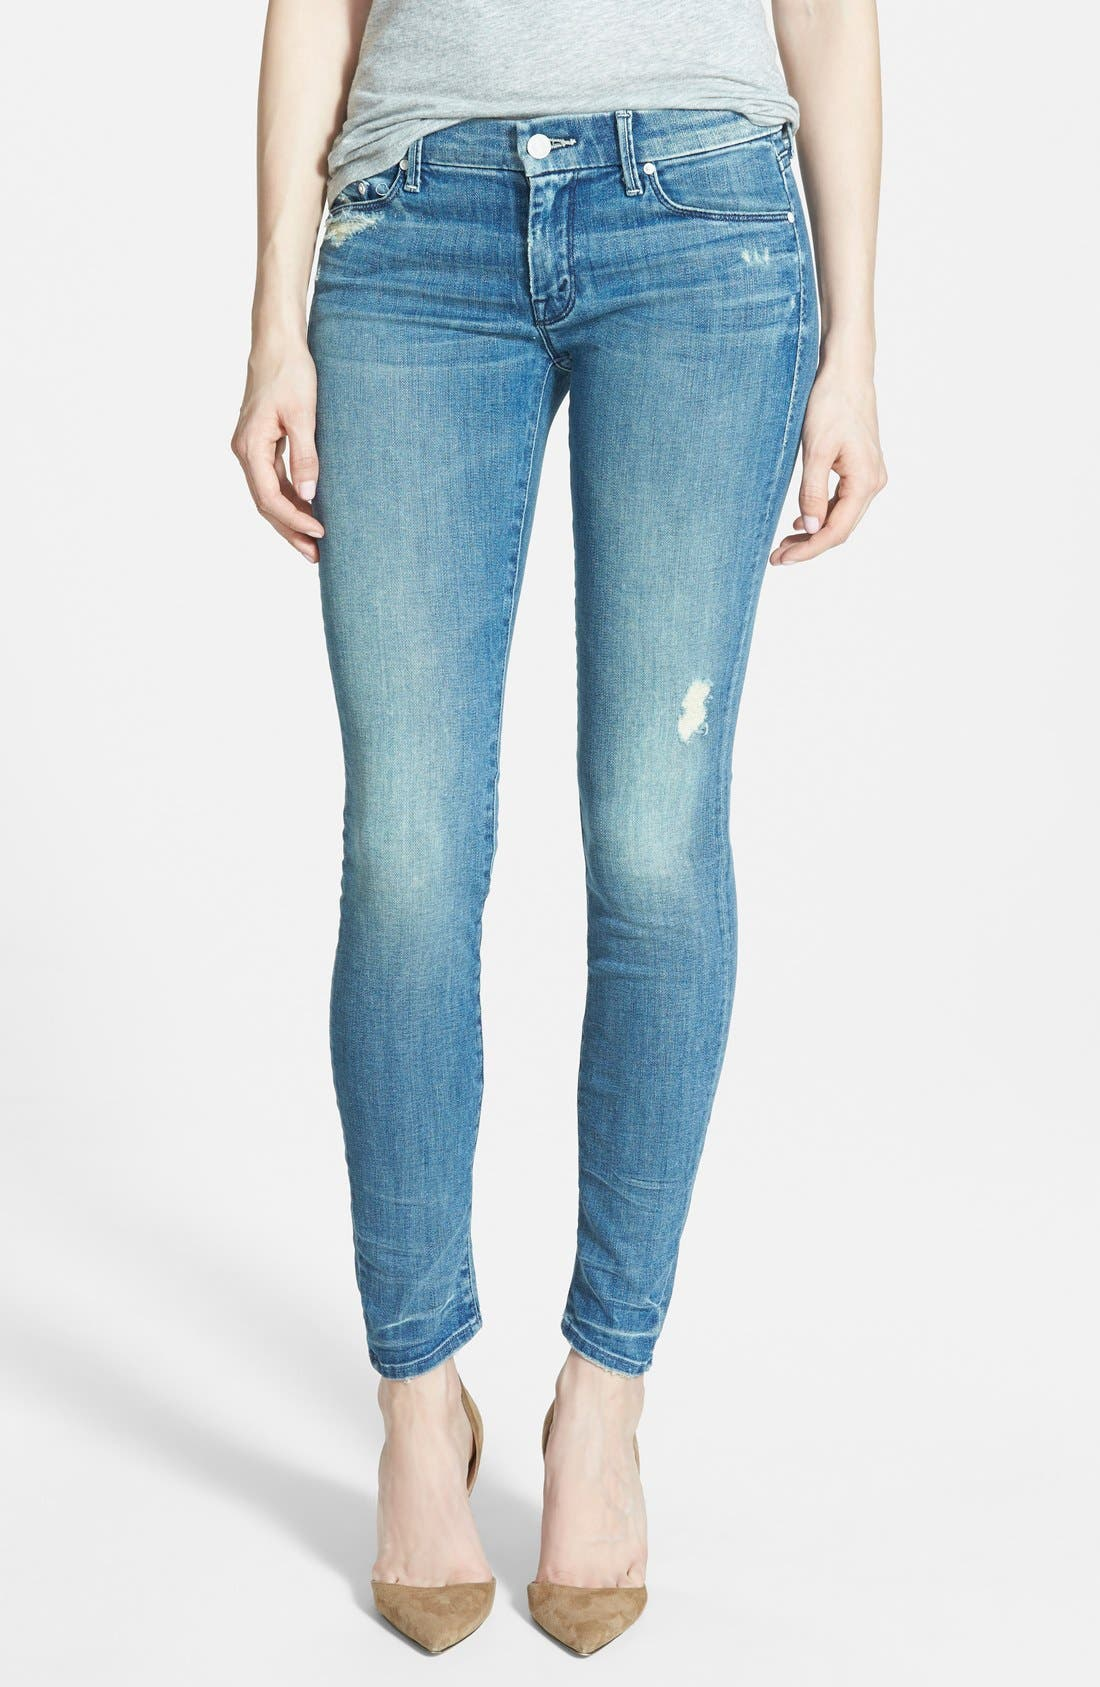 'The Looker' Skinny Stretch Jeans,                             Main thumbnail 1, color,                             GRAFFITI GIRL